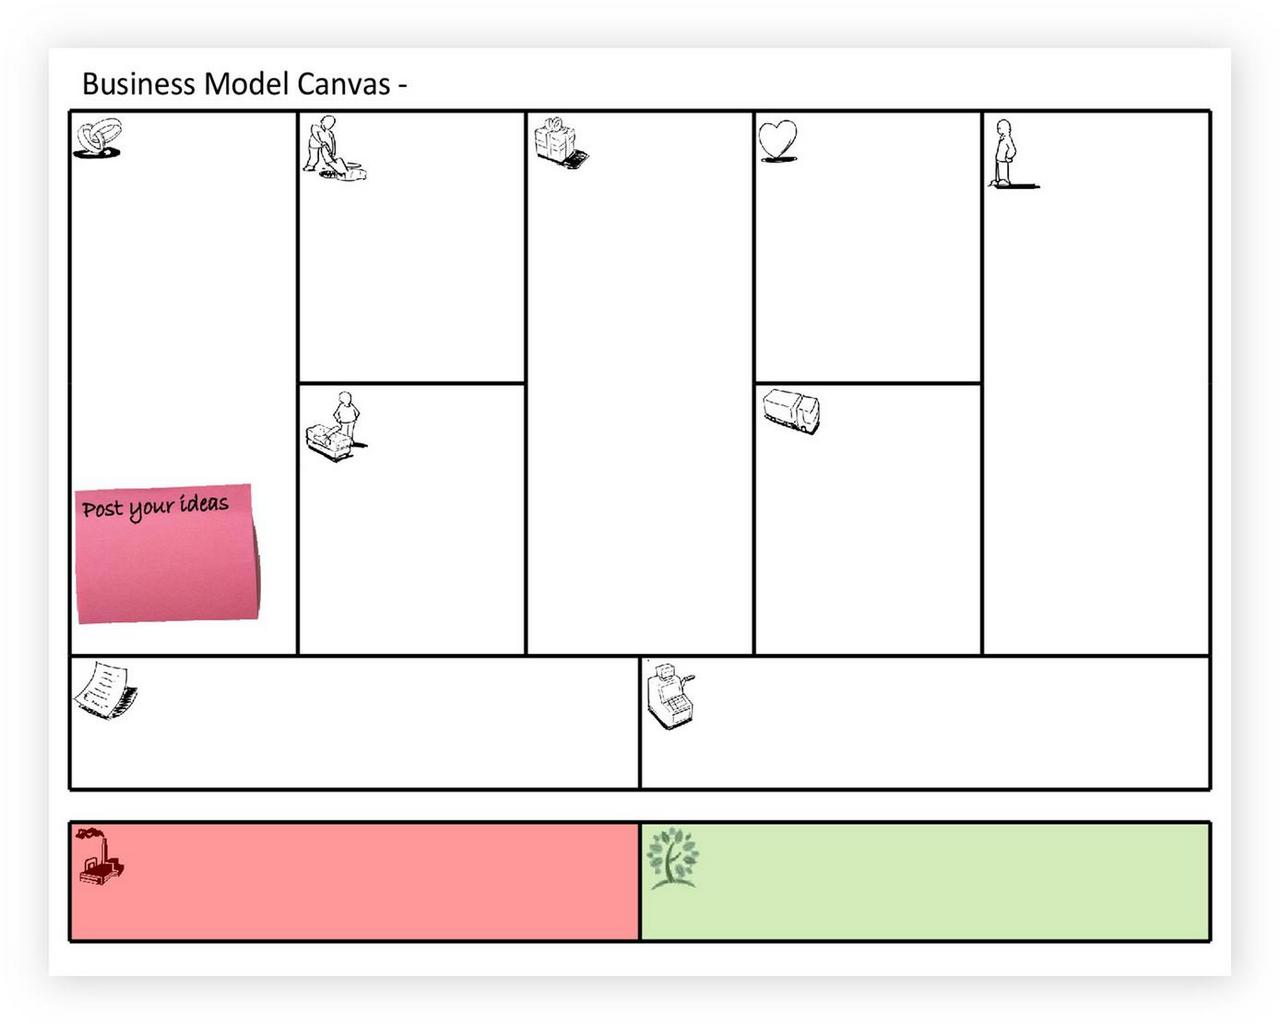 Business Model Canvas Template ppt 04